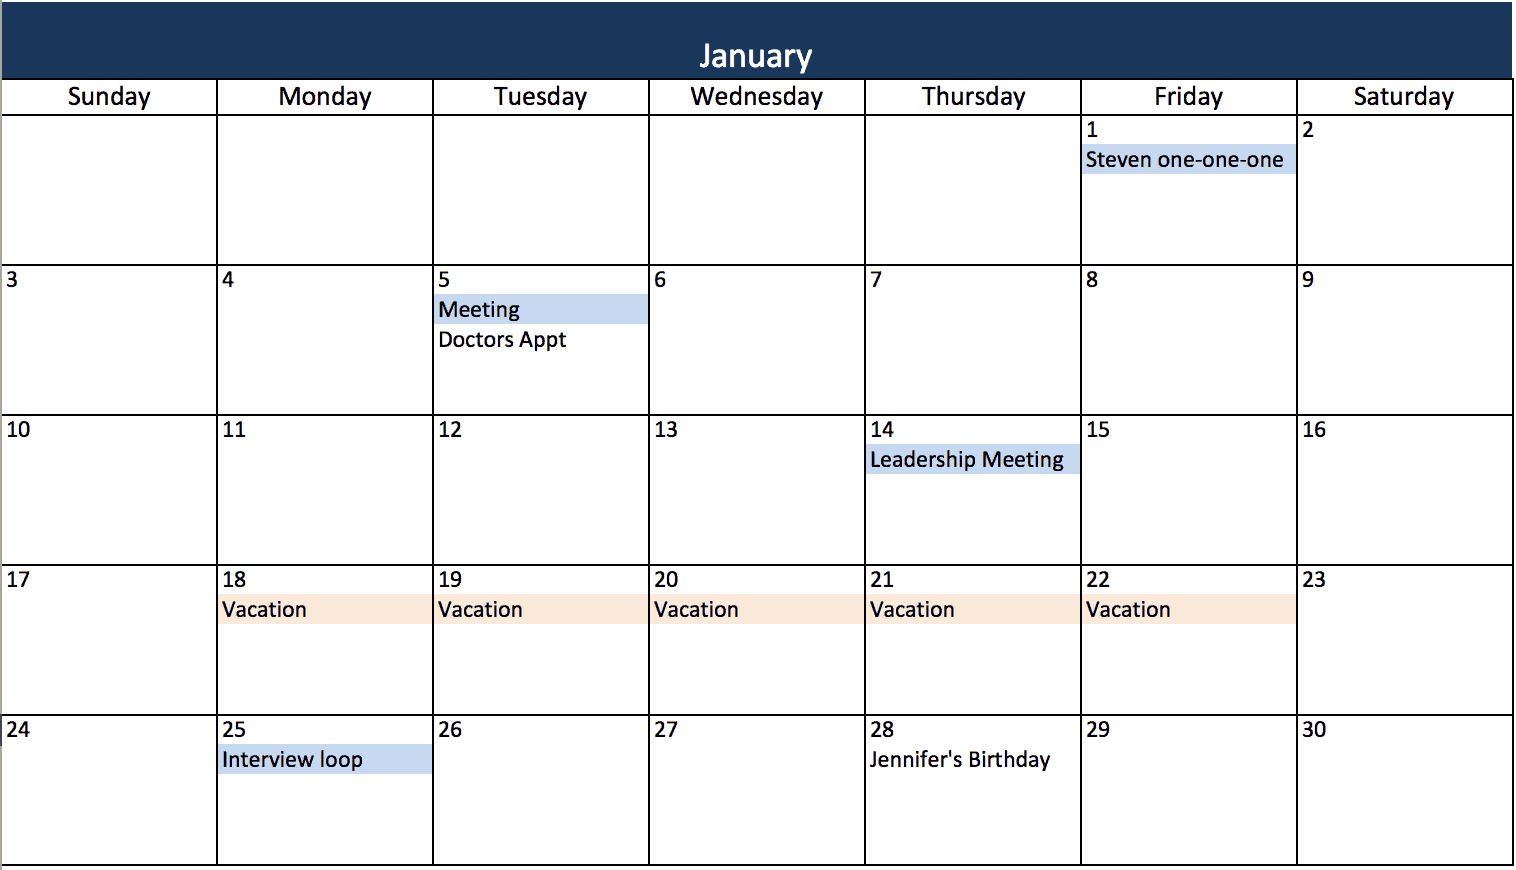 Calendar Templates For Excel : Make a calendar in excel includes free template